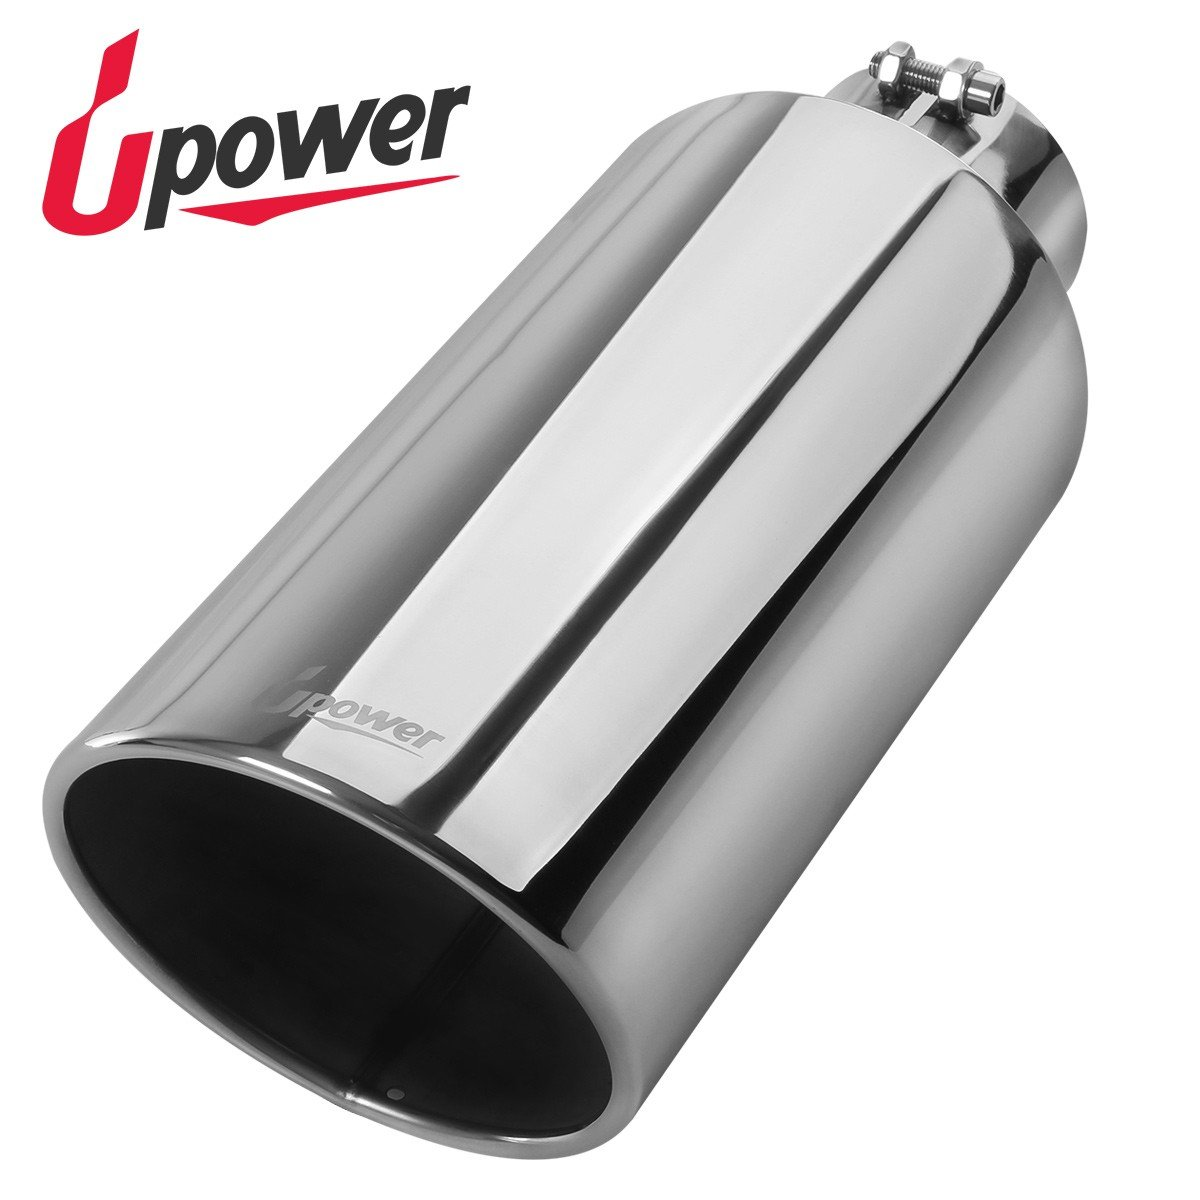 4// Length 9 Upower Pack of 2 Exhaust Tip 2.5 Inch Inlet 4 Outlet 9 Long Double Wall Slant Cut 304 Stainless Steel 2.5 inch//OD